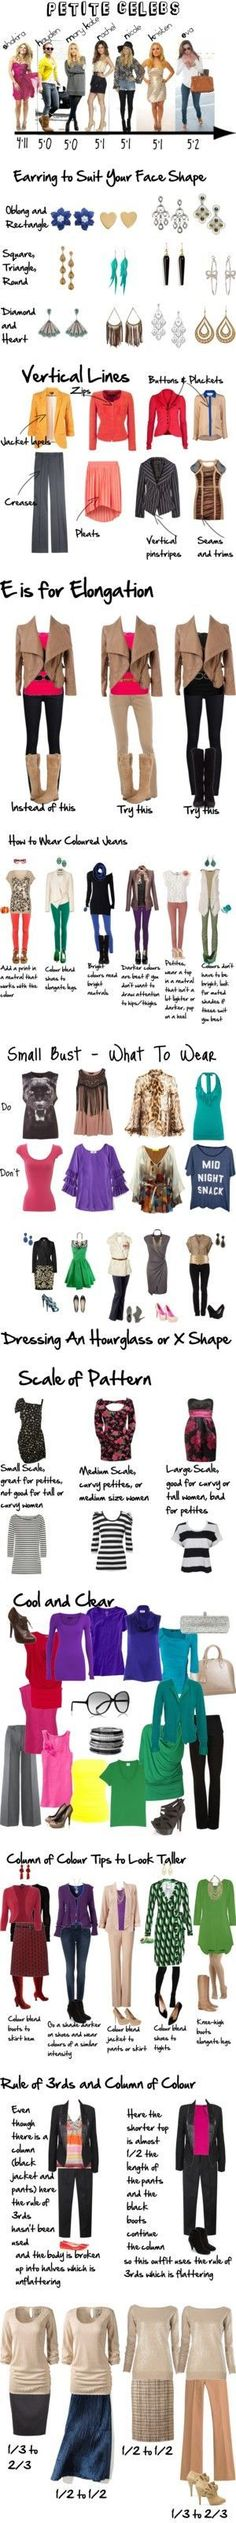 Jackie M. Style: Petite Dressing: How to dress your silhouette